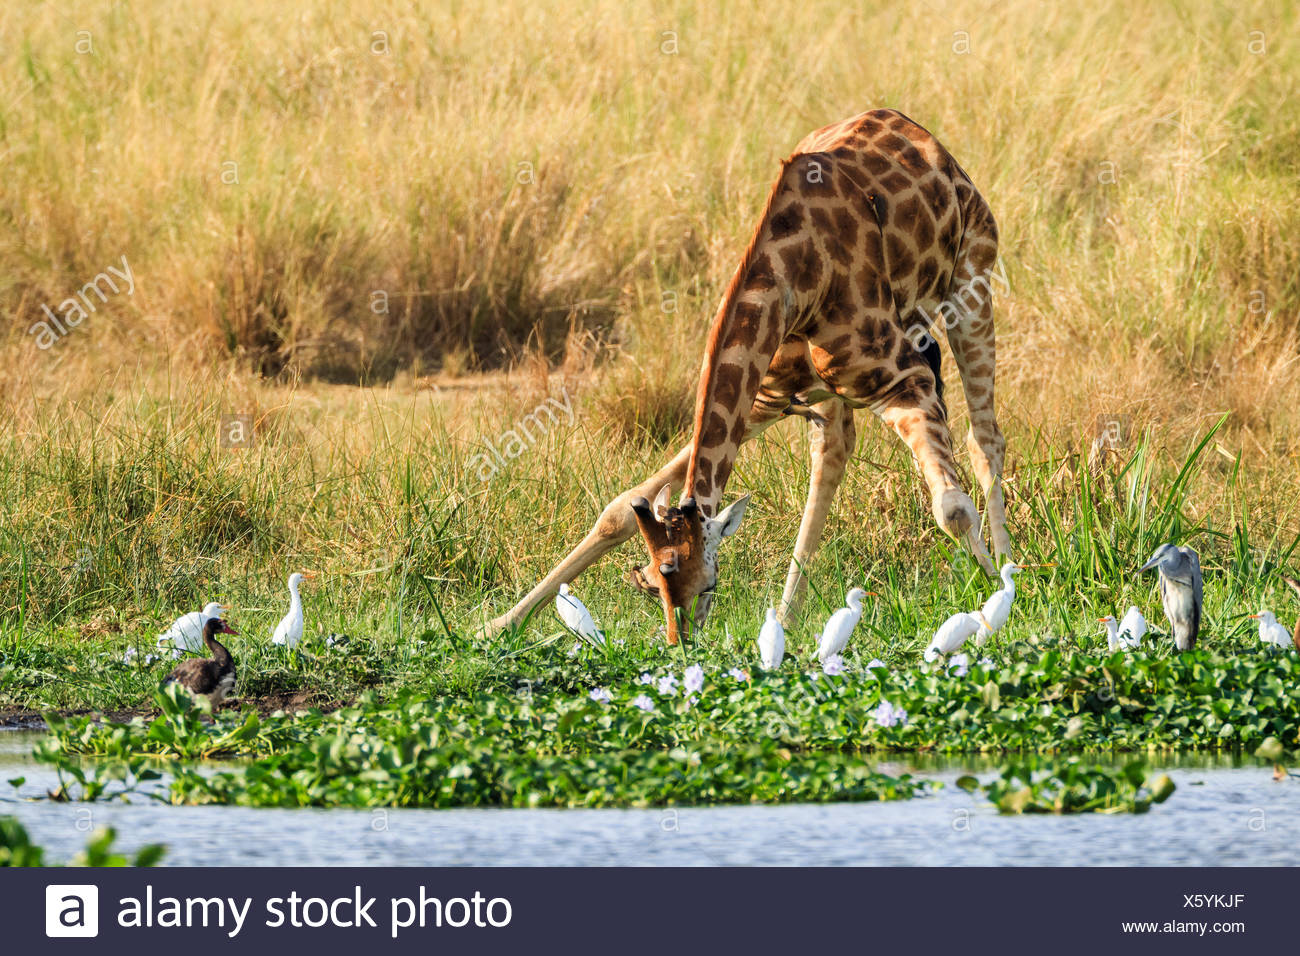 A Rothschild's giraffe, Giraffa camelopardalis rothschildi, drinks at the water's edge surrounded by water birds. - Stock Image